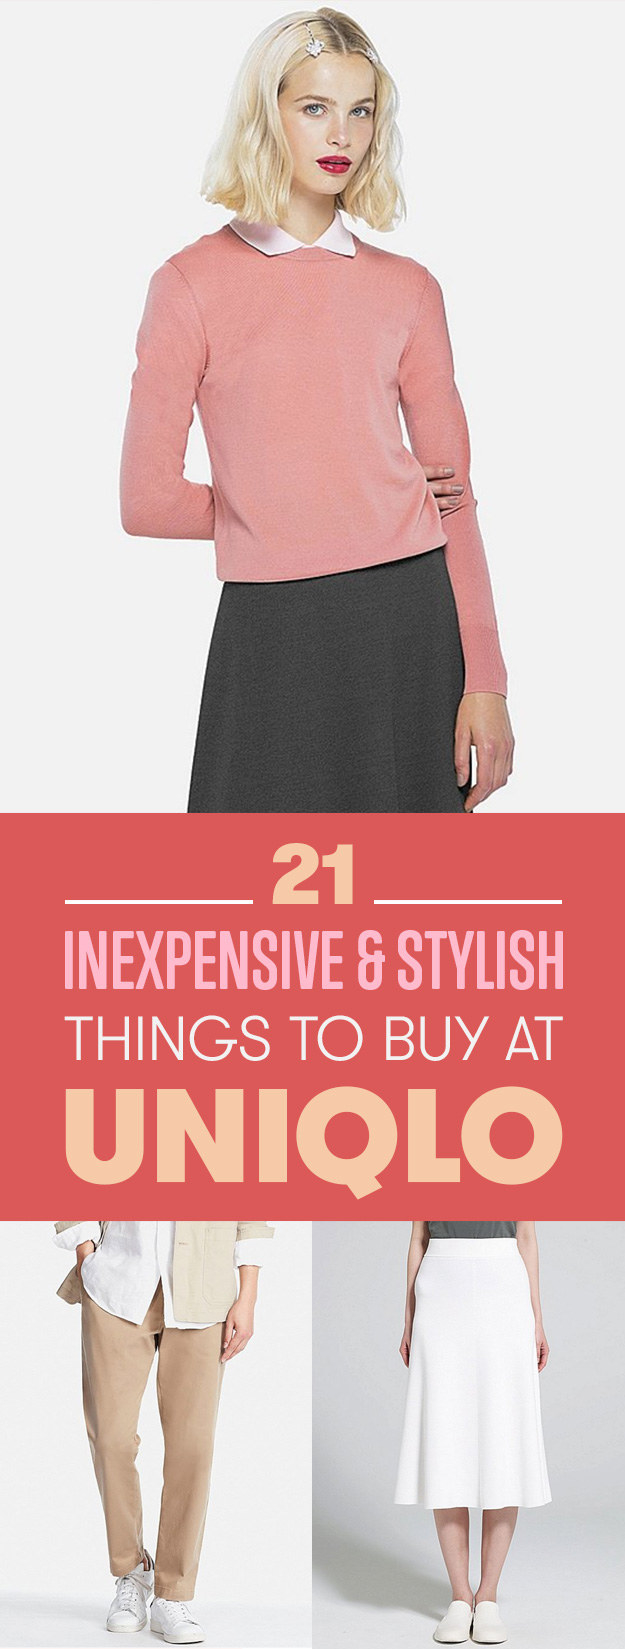 21 Under-100 Pieces to Buy at Uniqlo for Spring2017